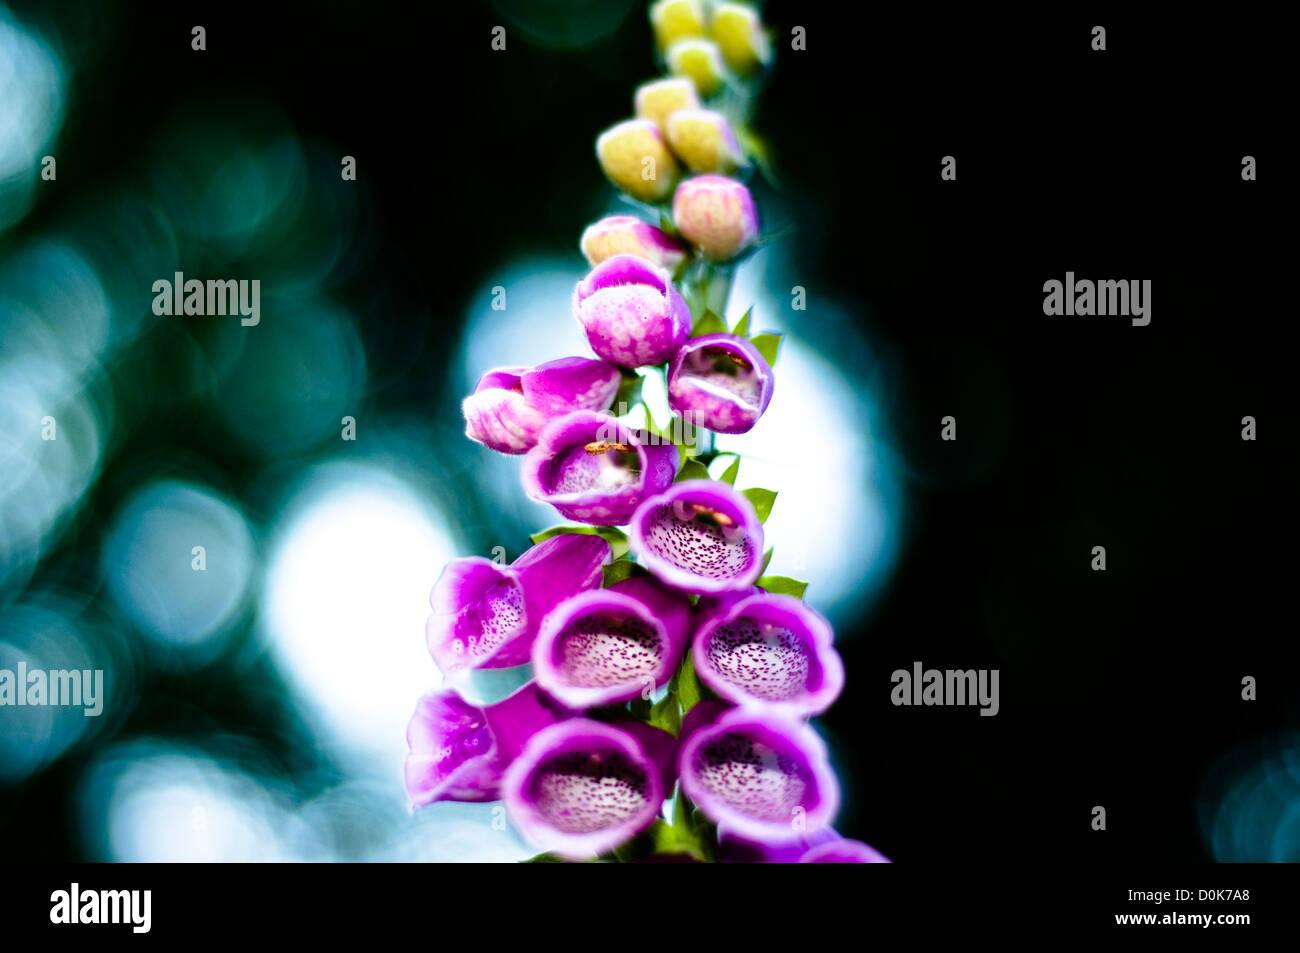 Detail of a Foxglove. - Stock Image